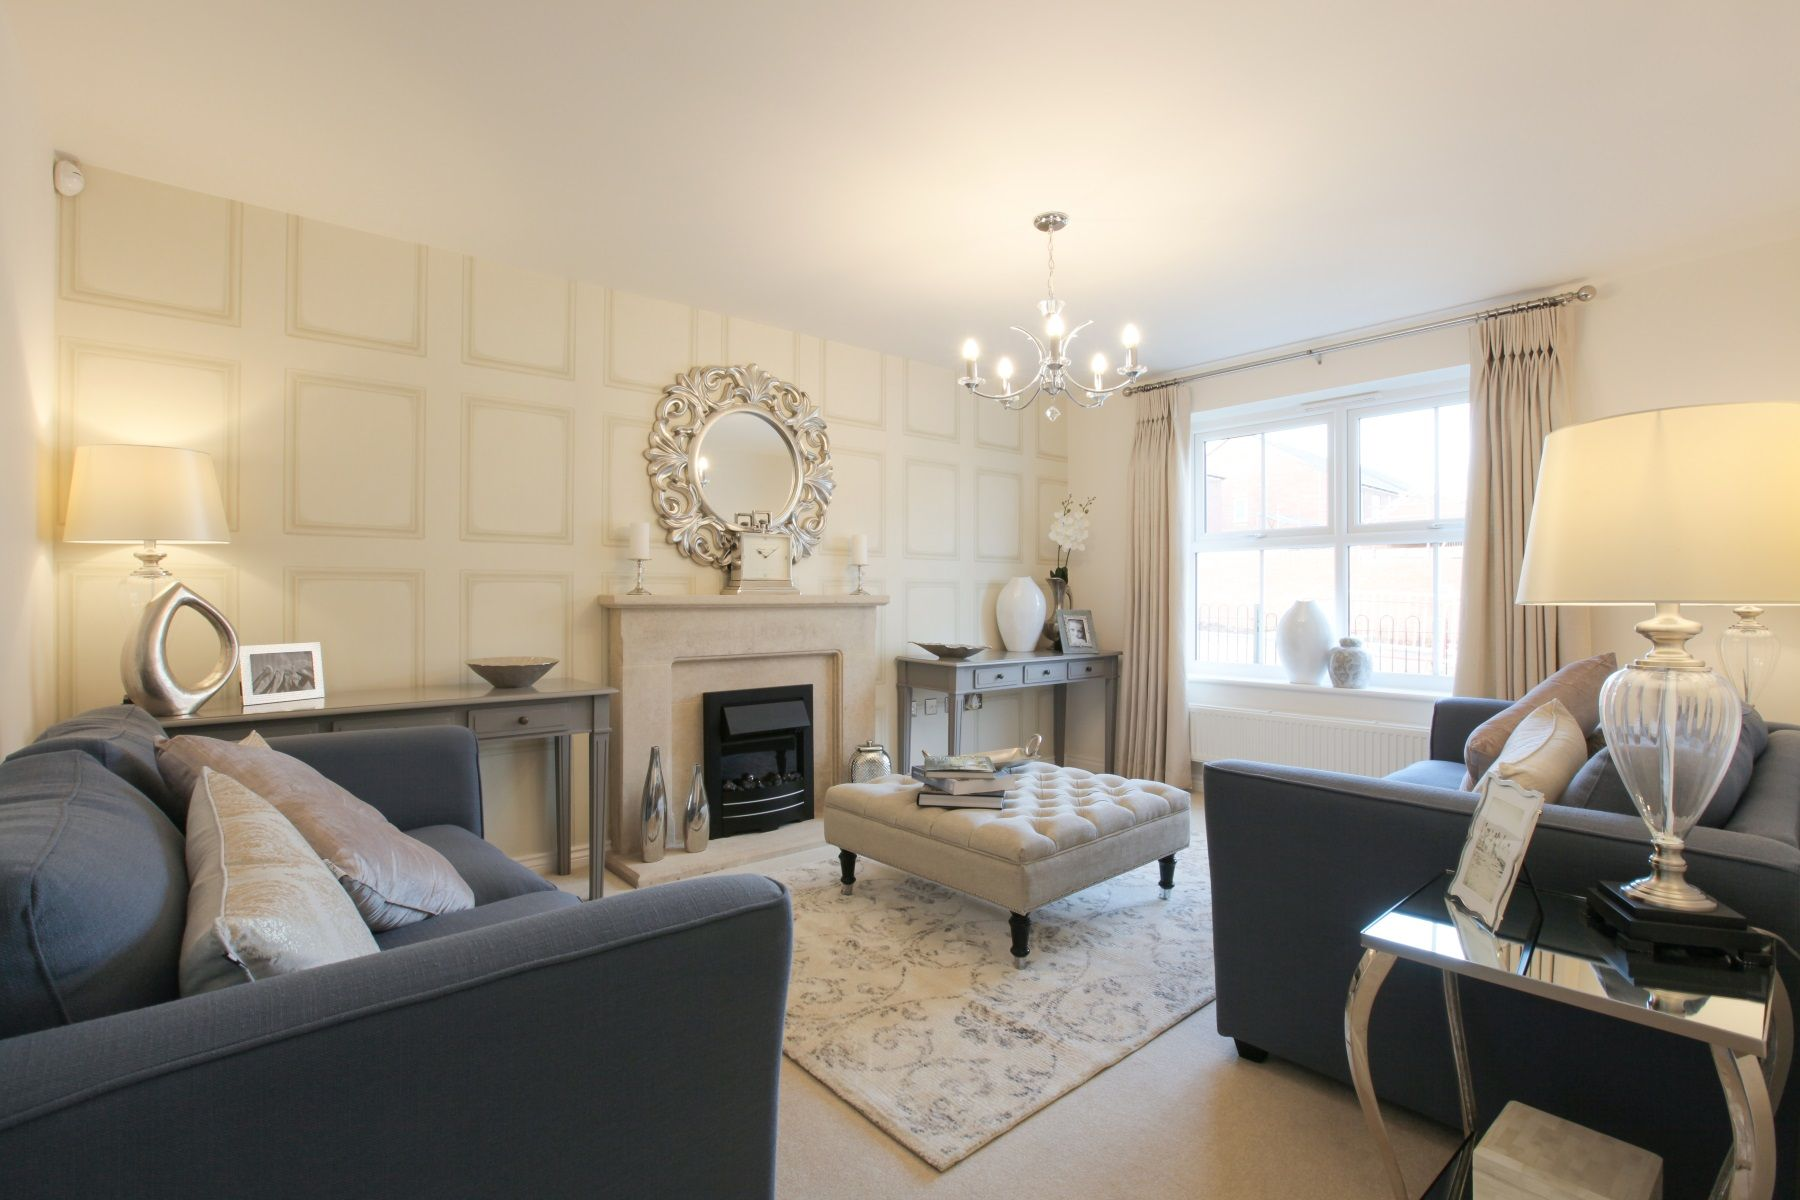 TW Exeter - Sherford - The Redwood example living room